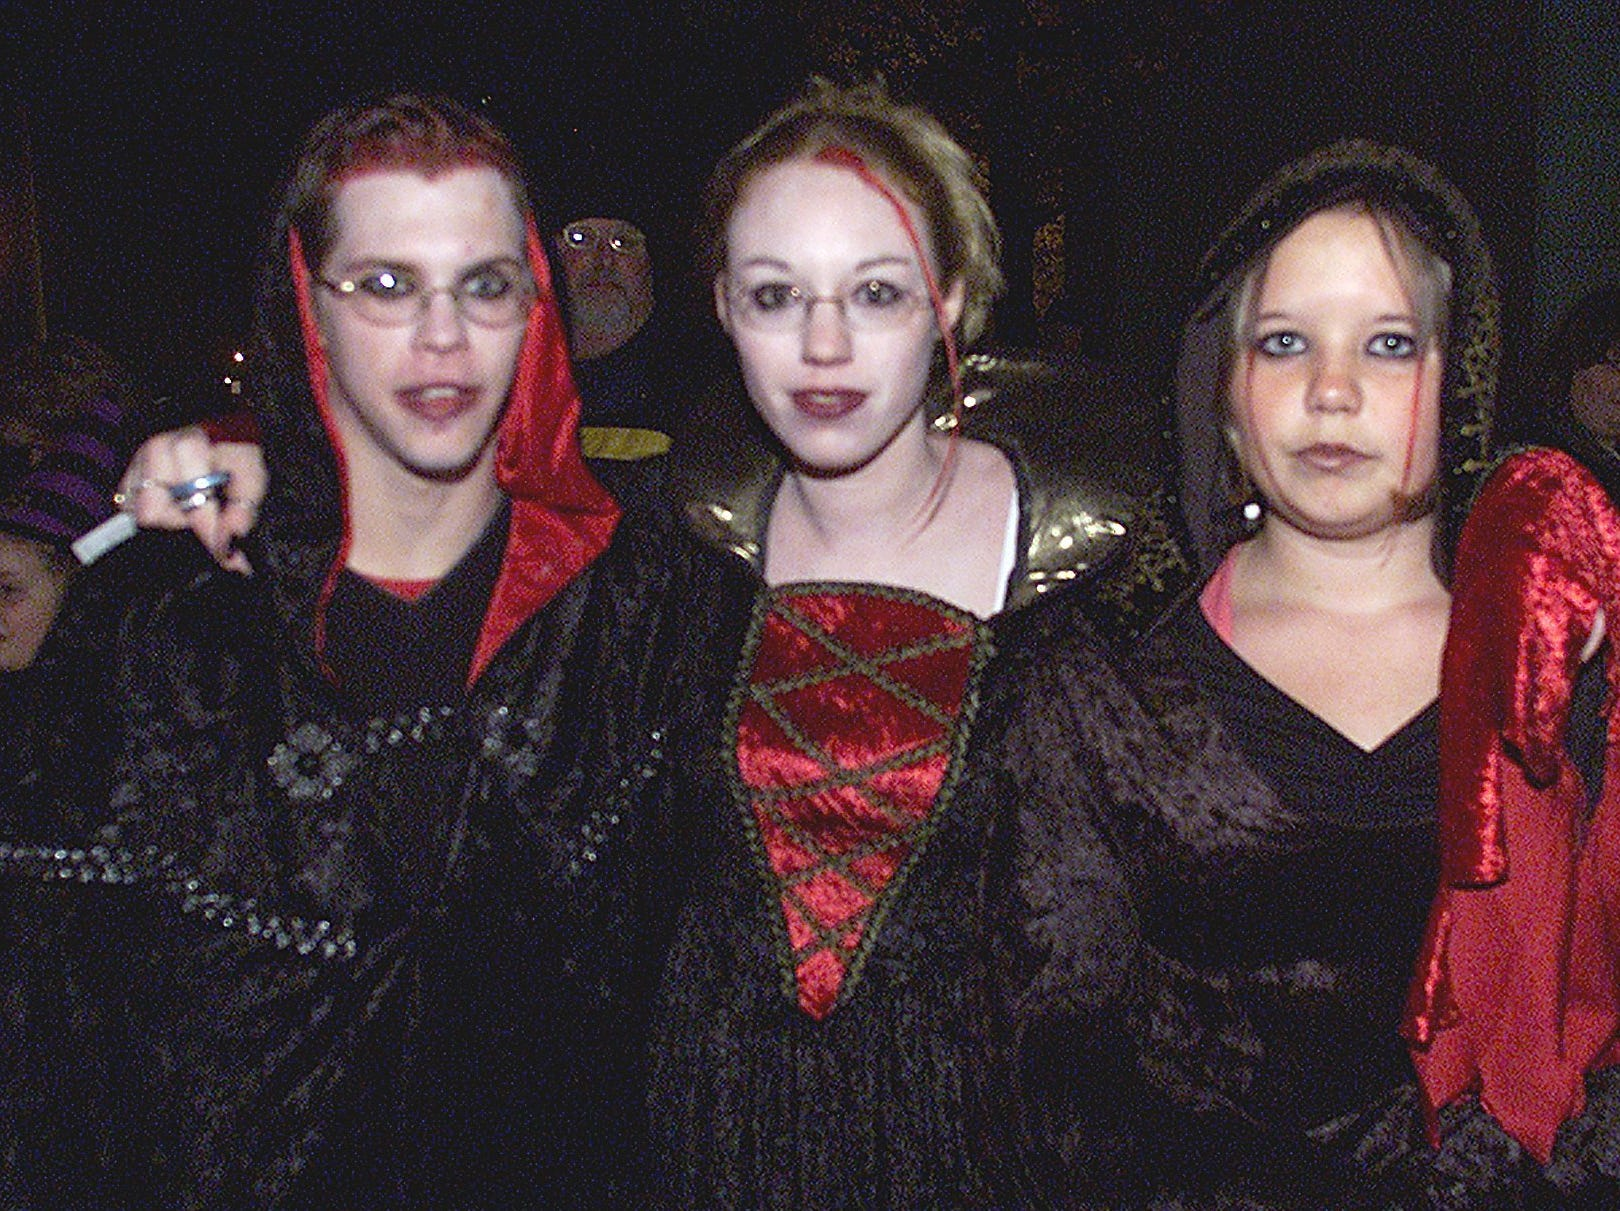 2003: Thomas A. Edison band members, from left, Dan Walker 16, Stacy Raalee, 17, and Sarah Barone, 25, take on a gothic look for the Elmira Heights Halloween parade.